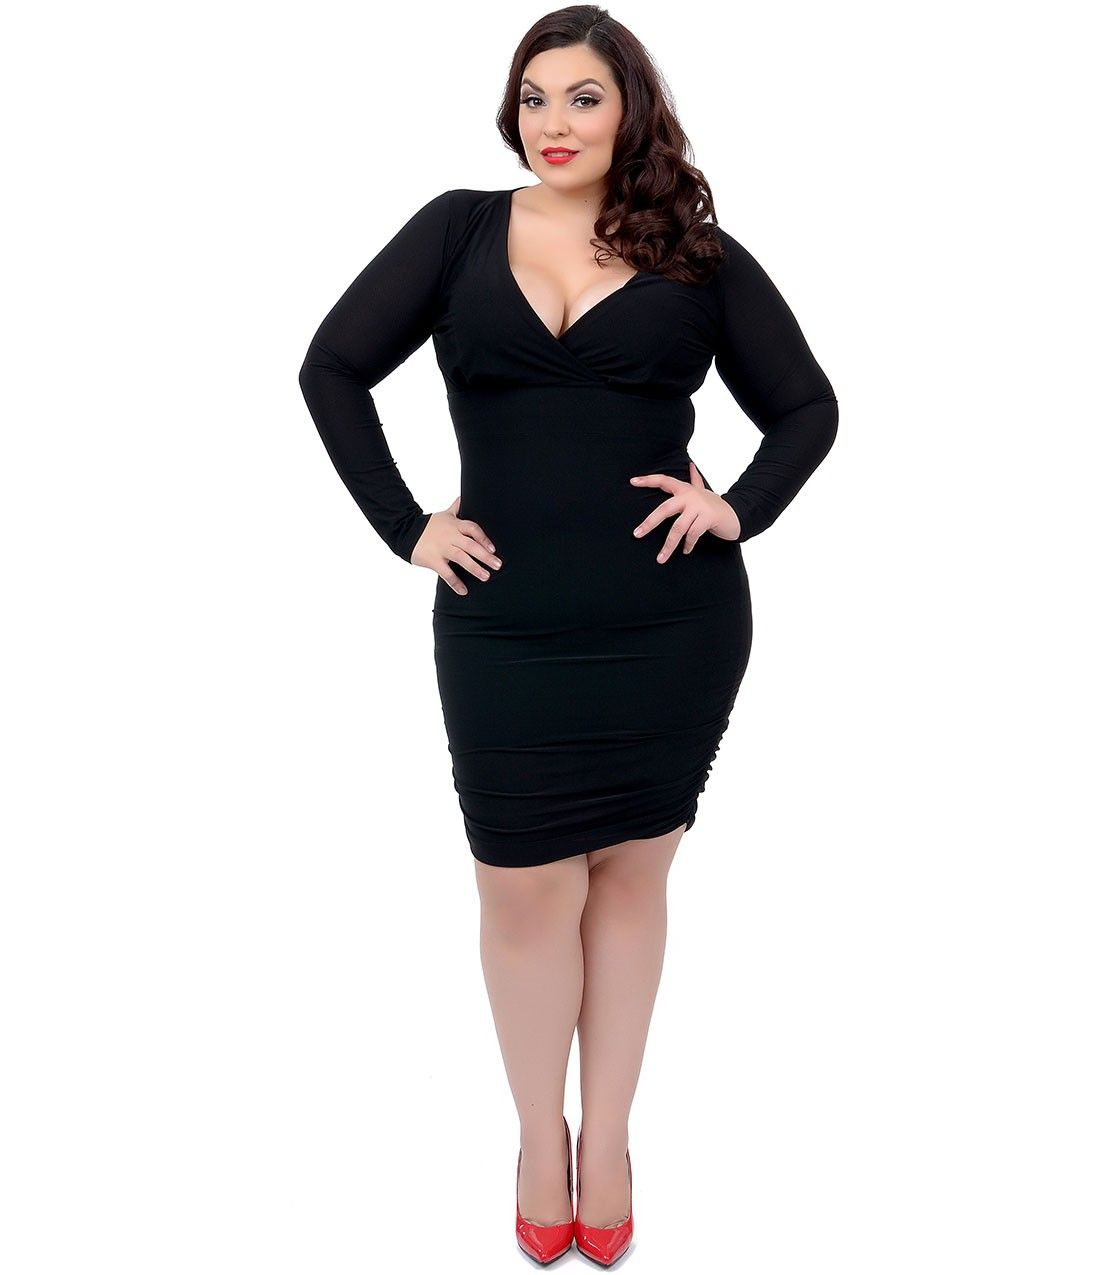 Plus size black dress with sleeves | Wedding dress | Pinterest ...